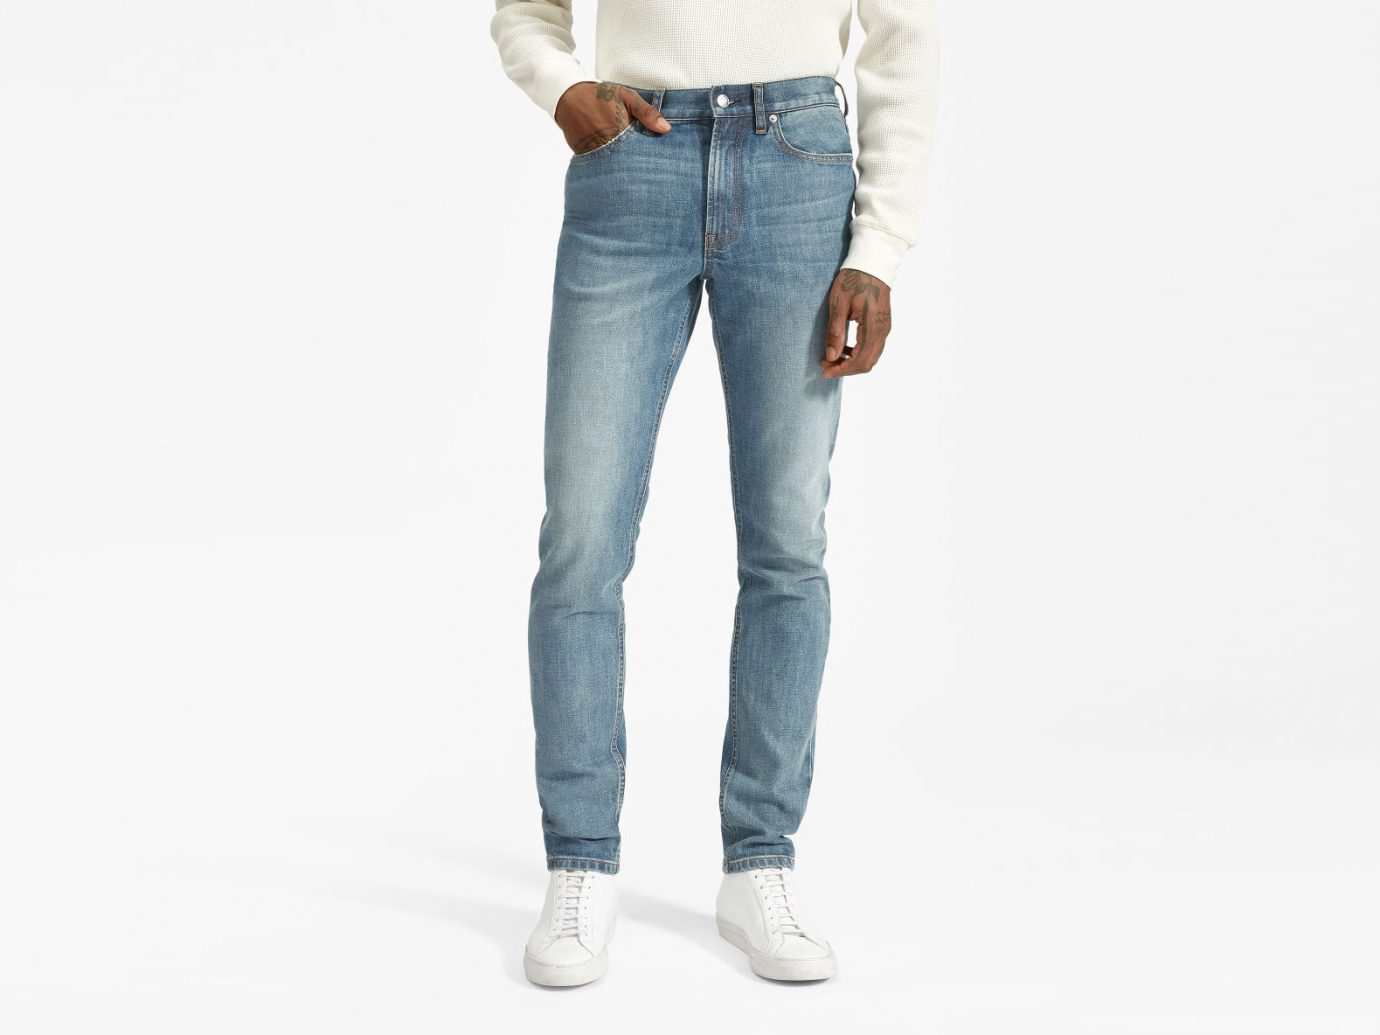 Everlane The Slim Fit Jean